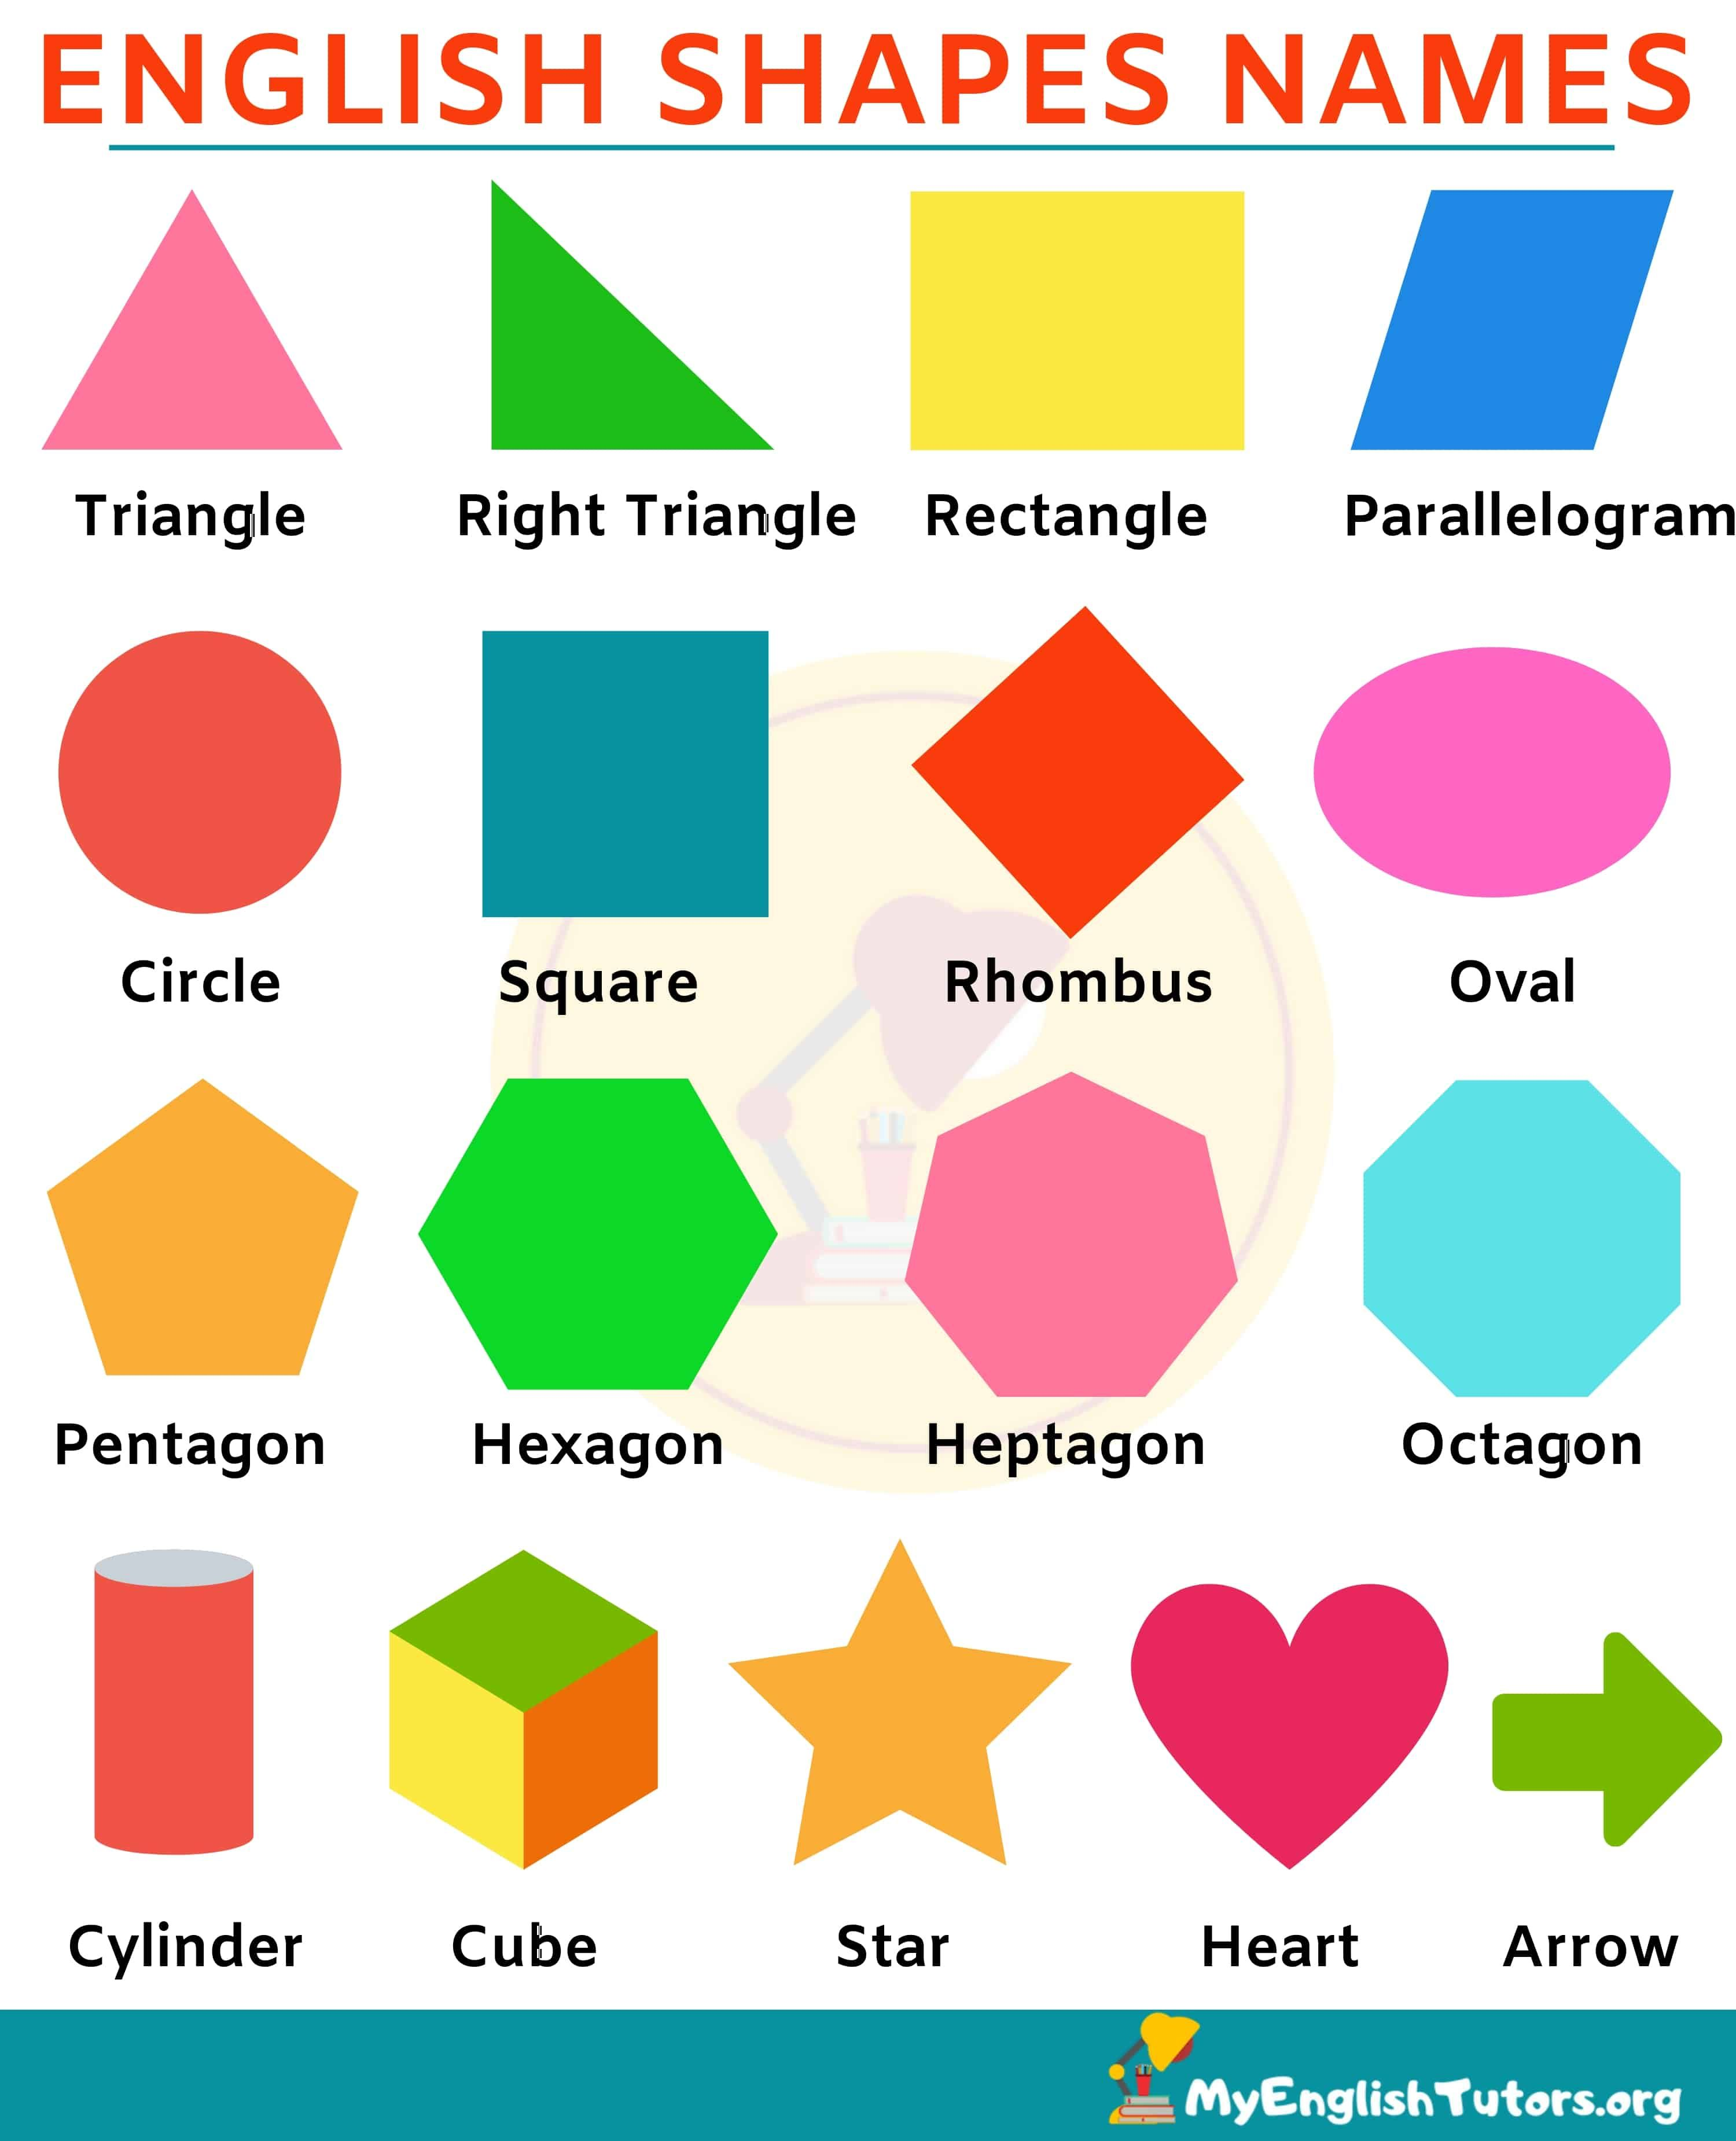 Shapes Names: Learn Different Types of Shapes in English